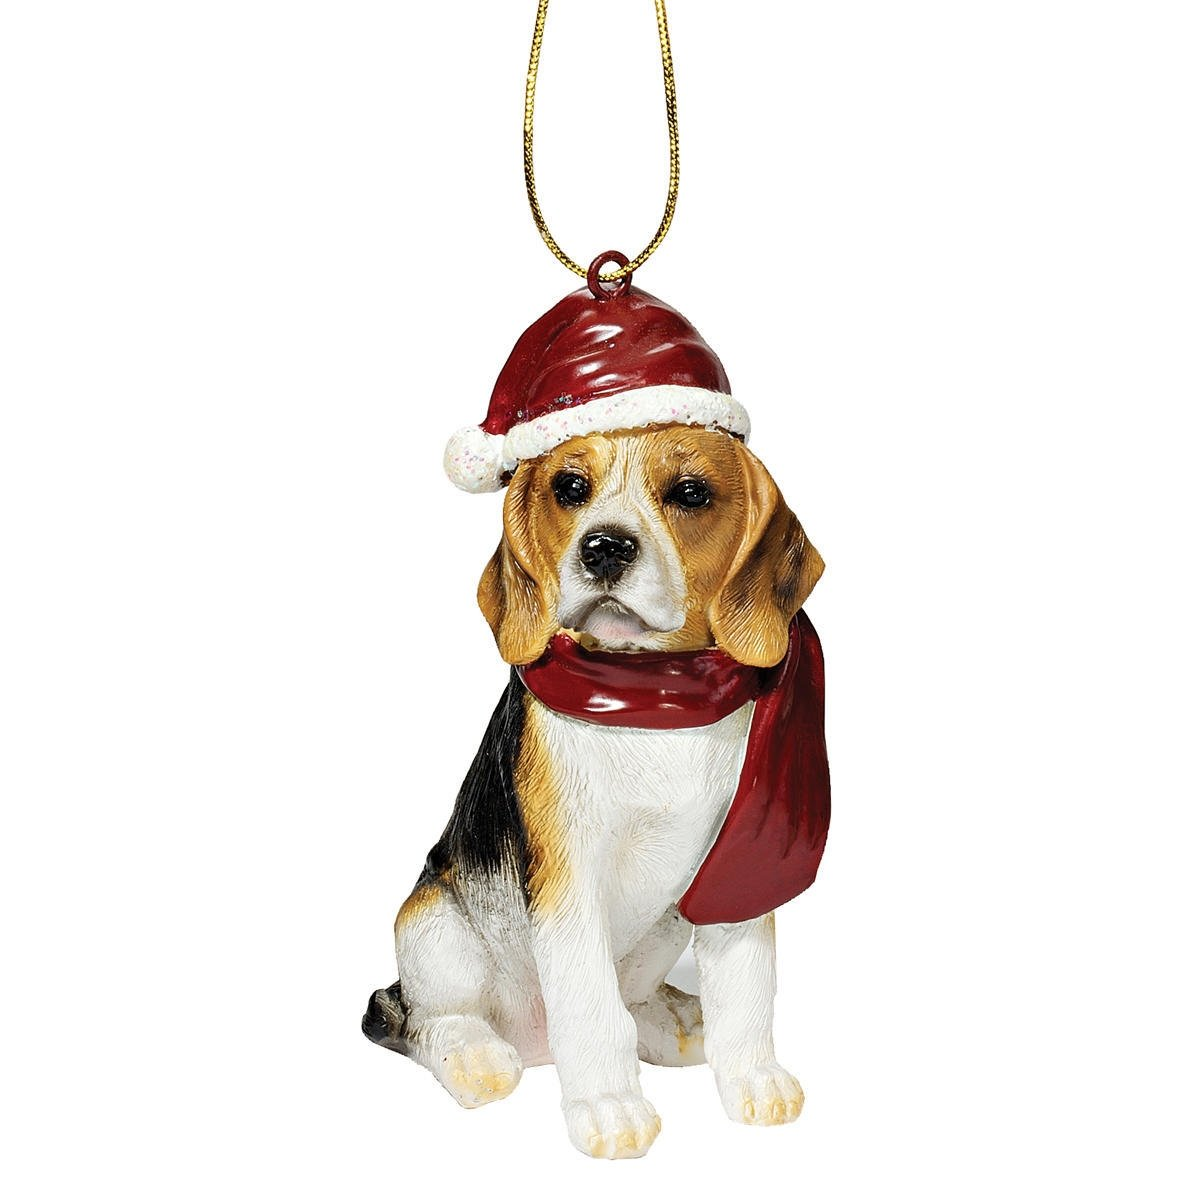 Design Toscano Beagle Holiday Dog Christmas Tree Ornament Xmas Decorations, 3 Inch, Polyresin, Full Color